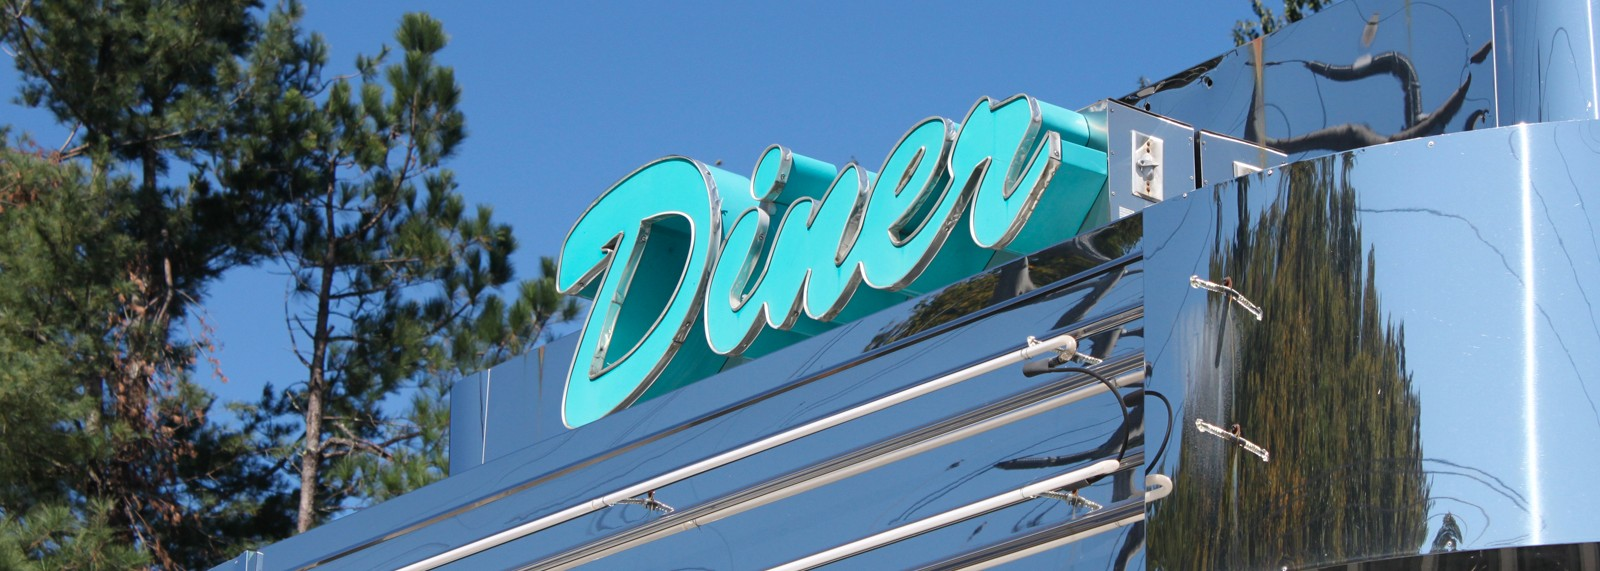 US diner photographed by thrive communications